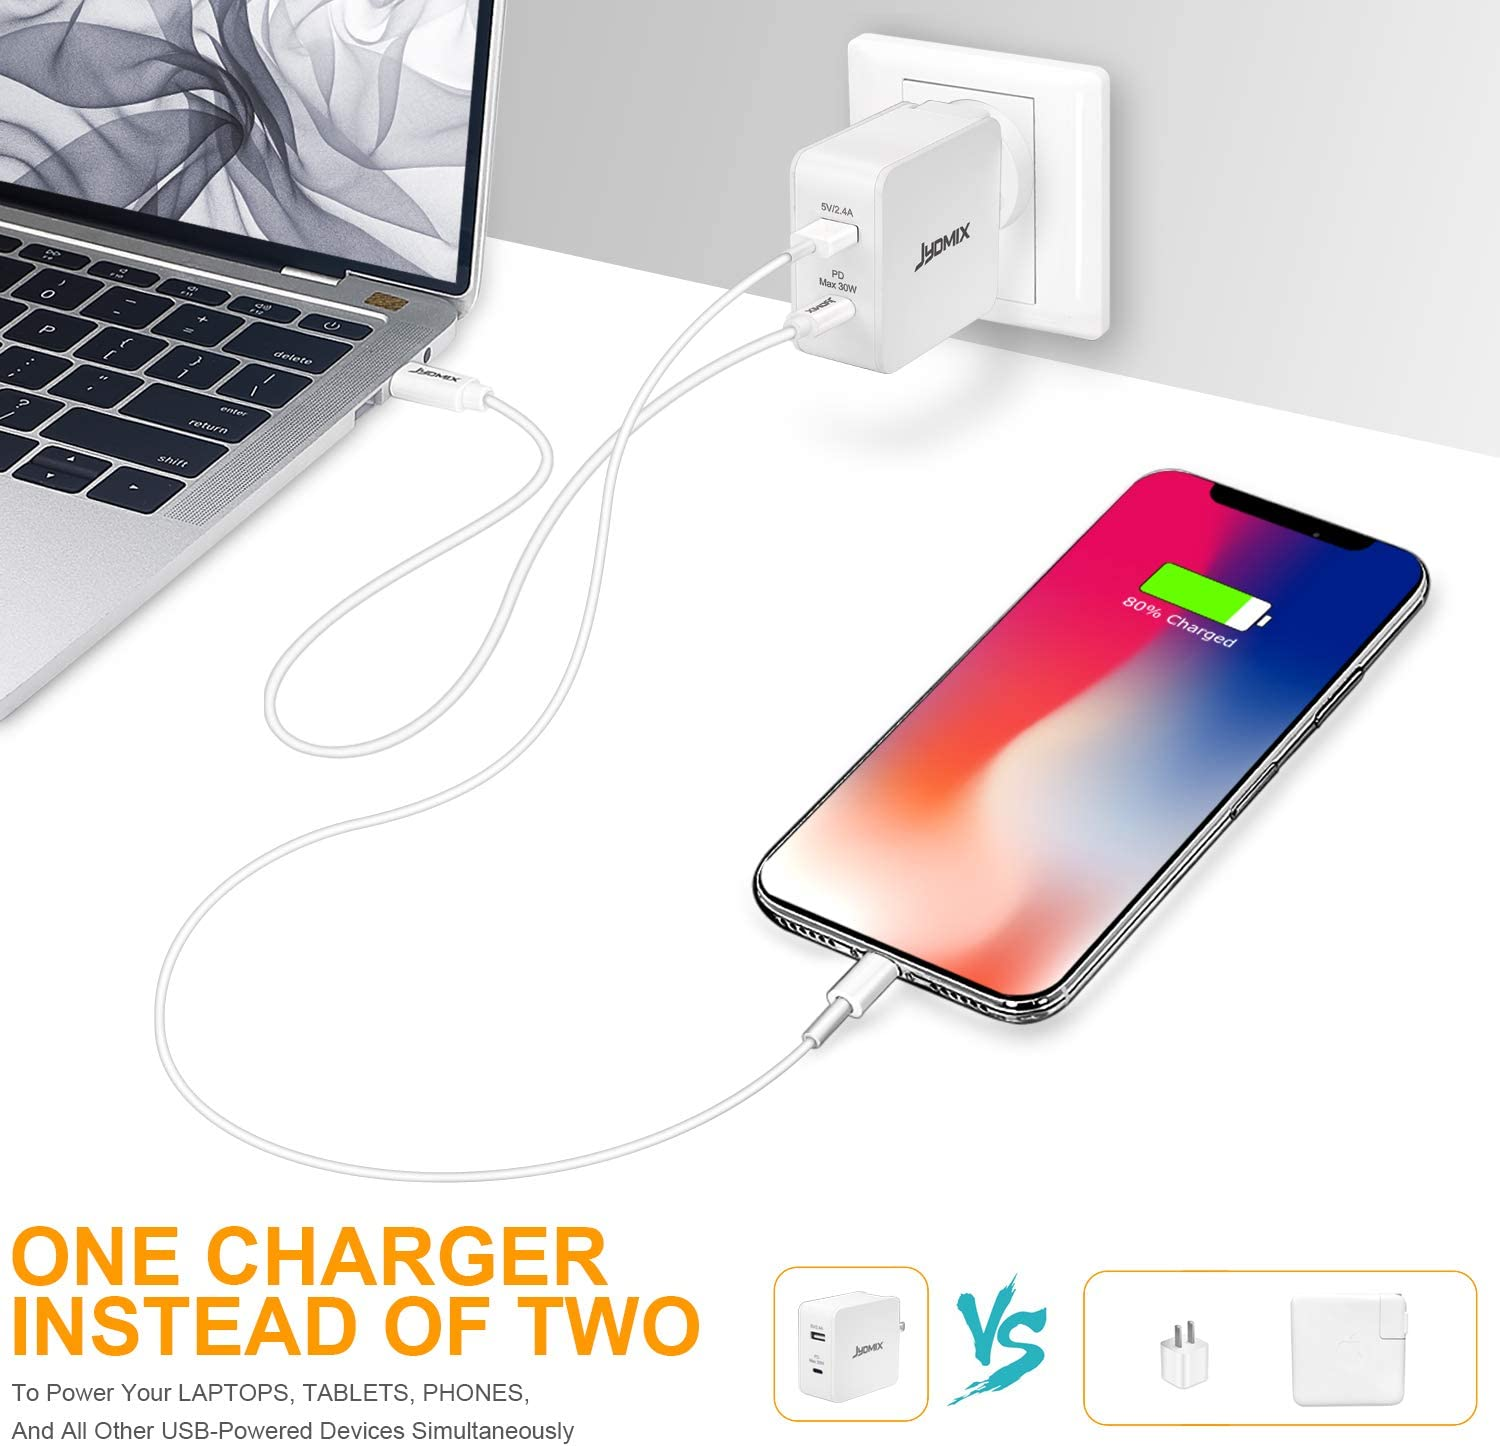 2-Port Universal Travel Charger with USB-C Power Delivery and Standard USB-A Worldwide 42W USB Power Travel Adapter with Interchangeable Plugs JYDMIX USB C PD Charger 30W